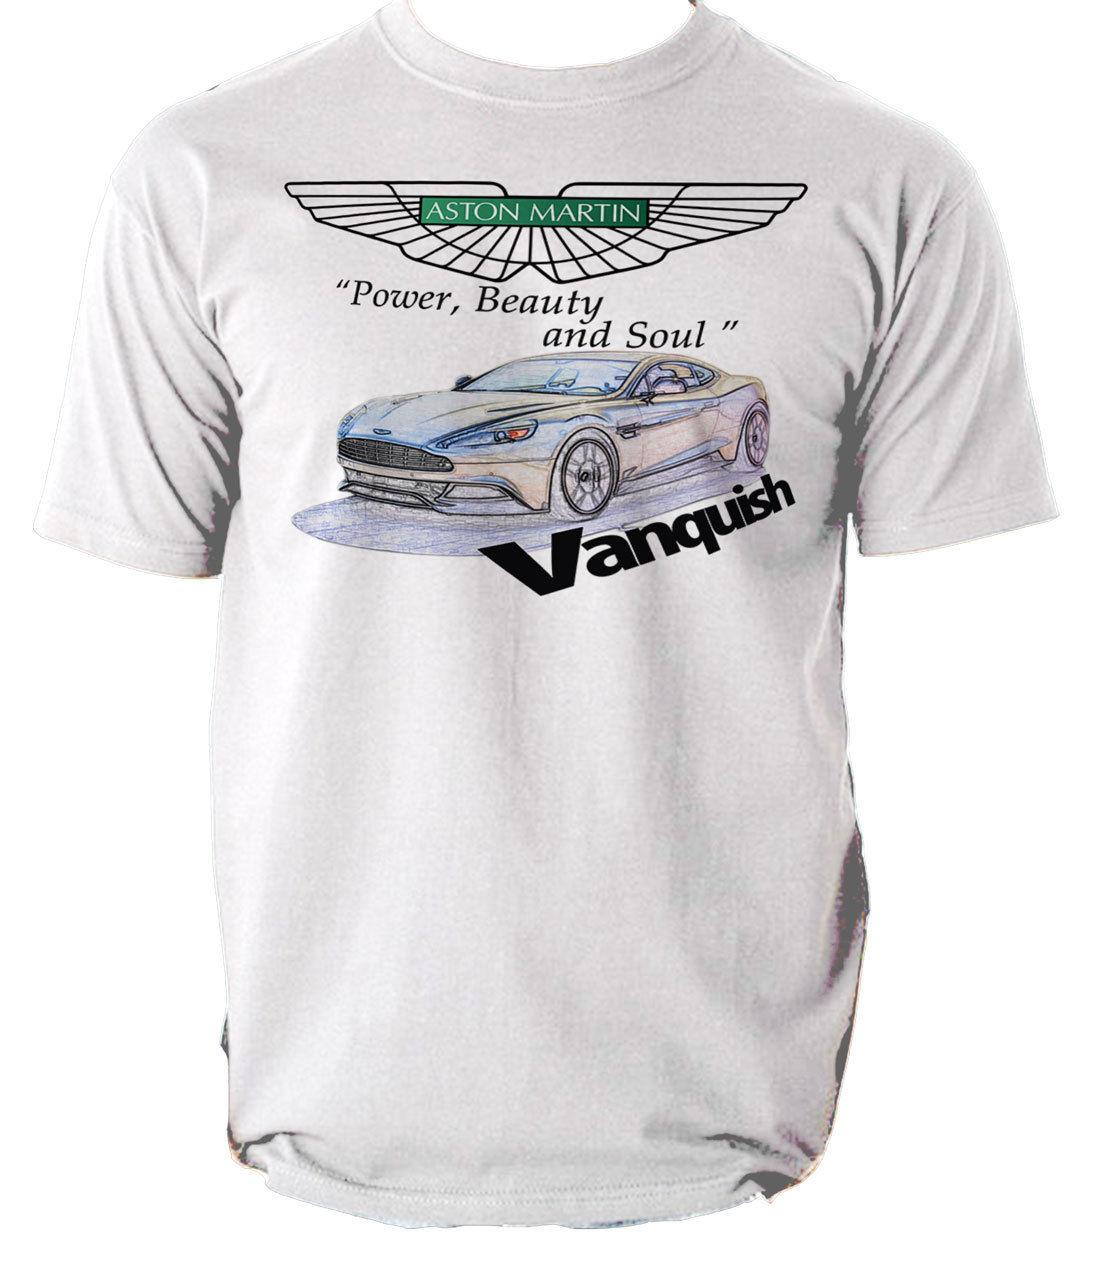 aston martin t shirt racing unisex mens car team men`s s classic t